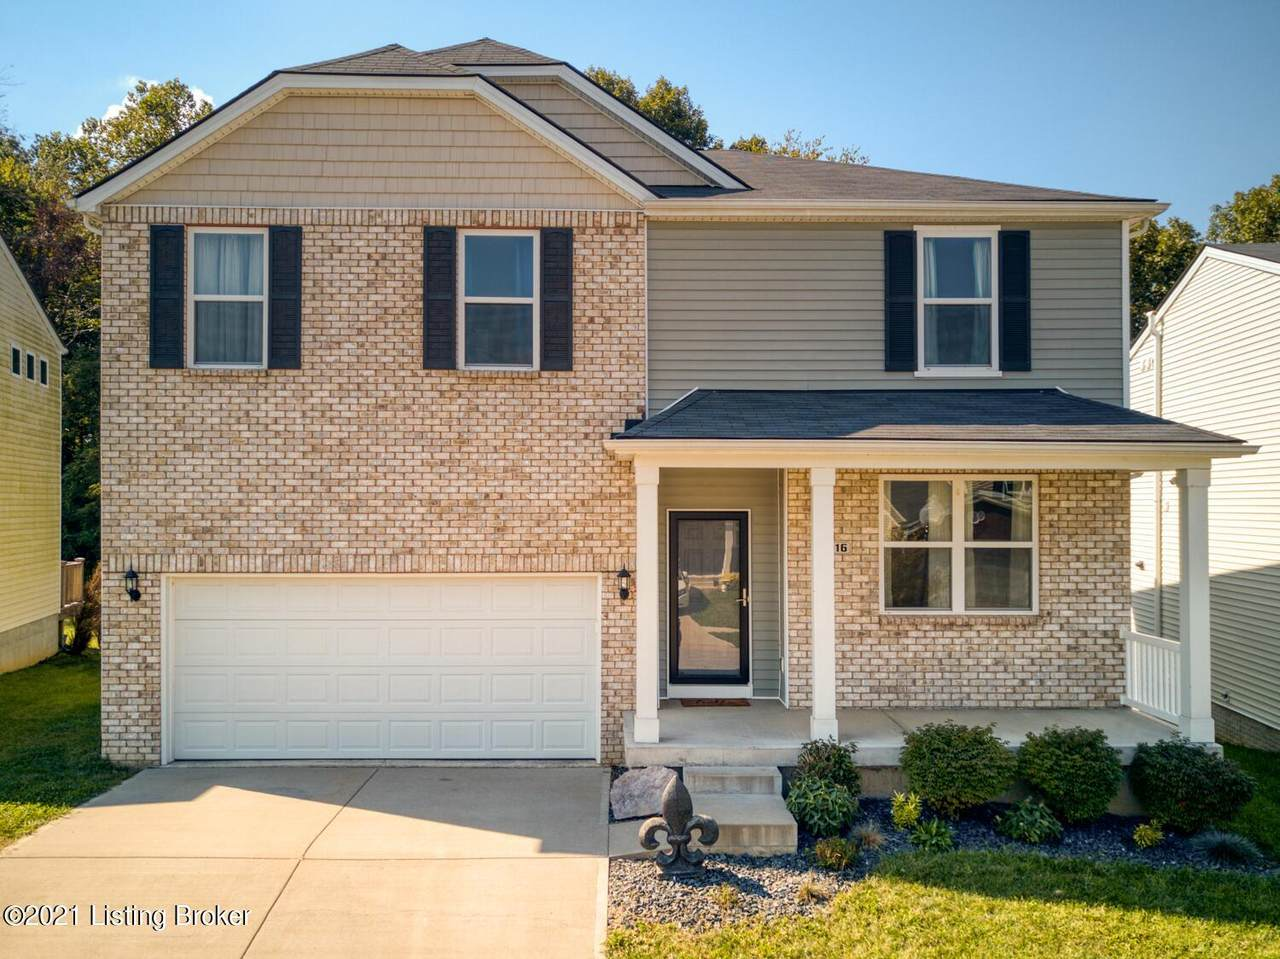 6816 Brittany Oak Dr - Photo 1